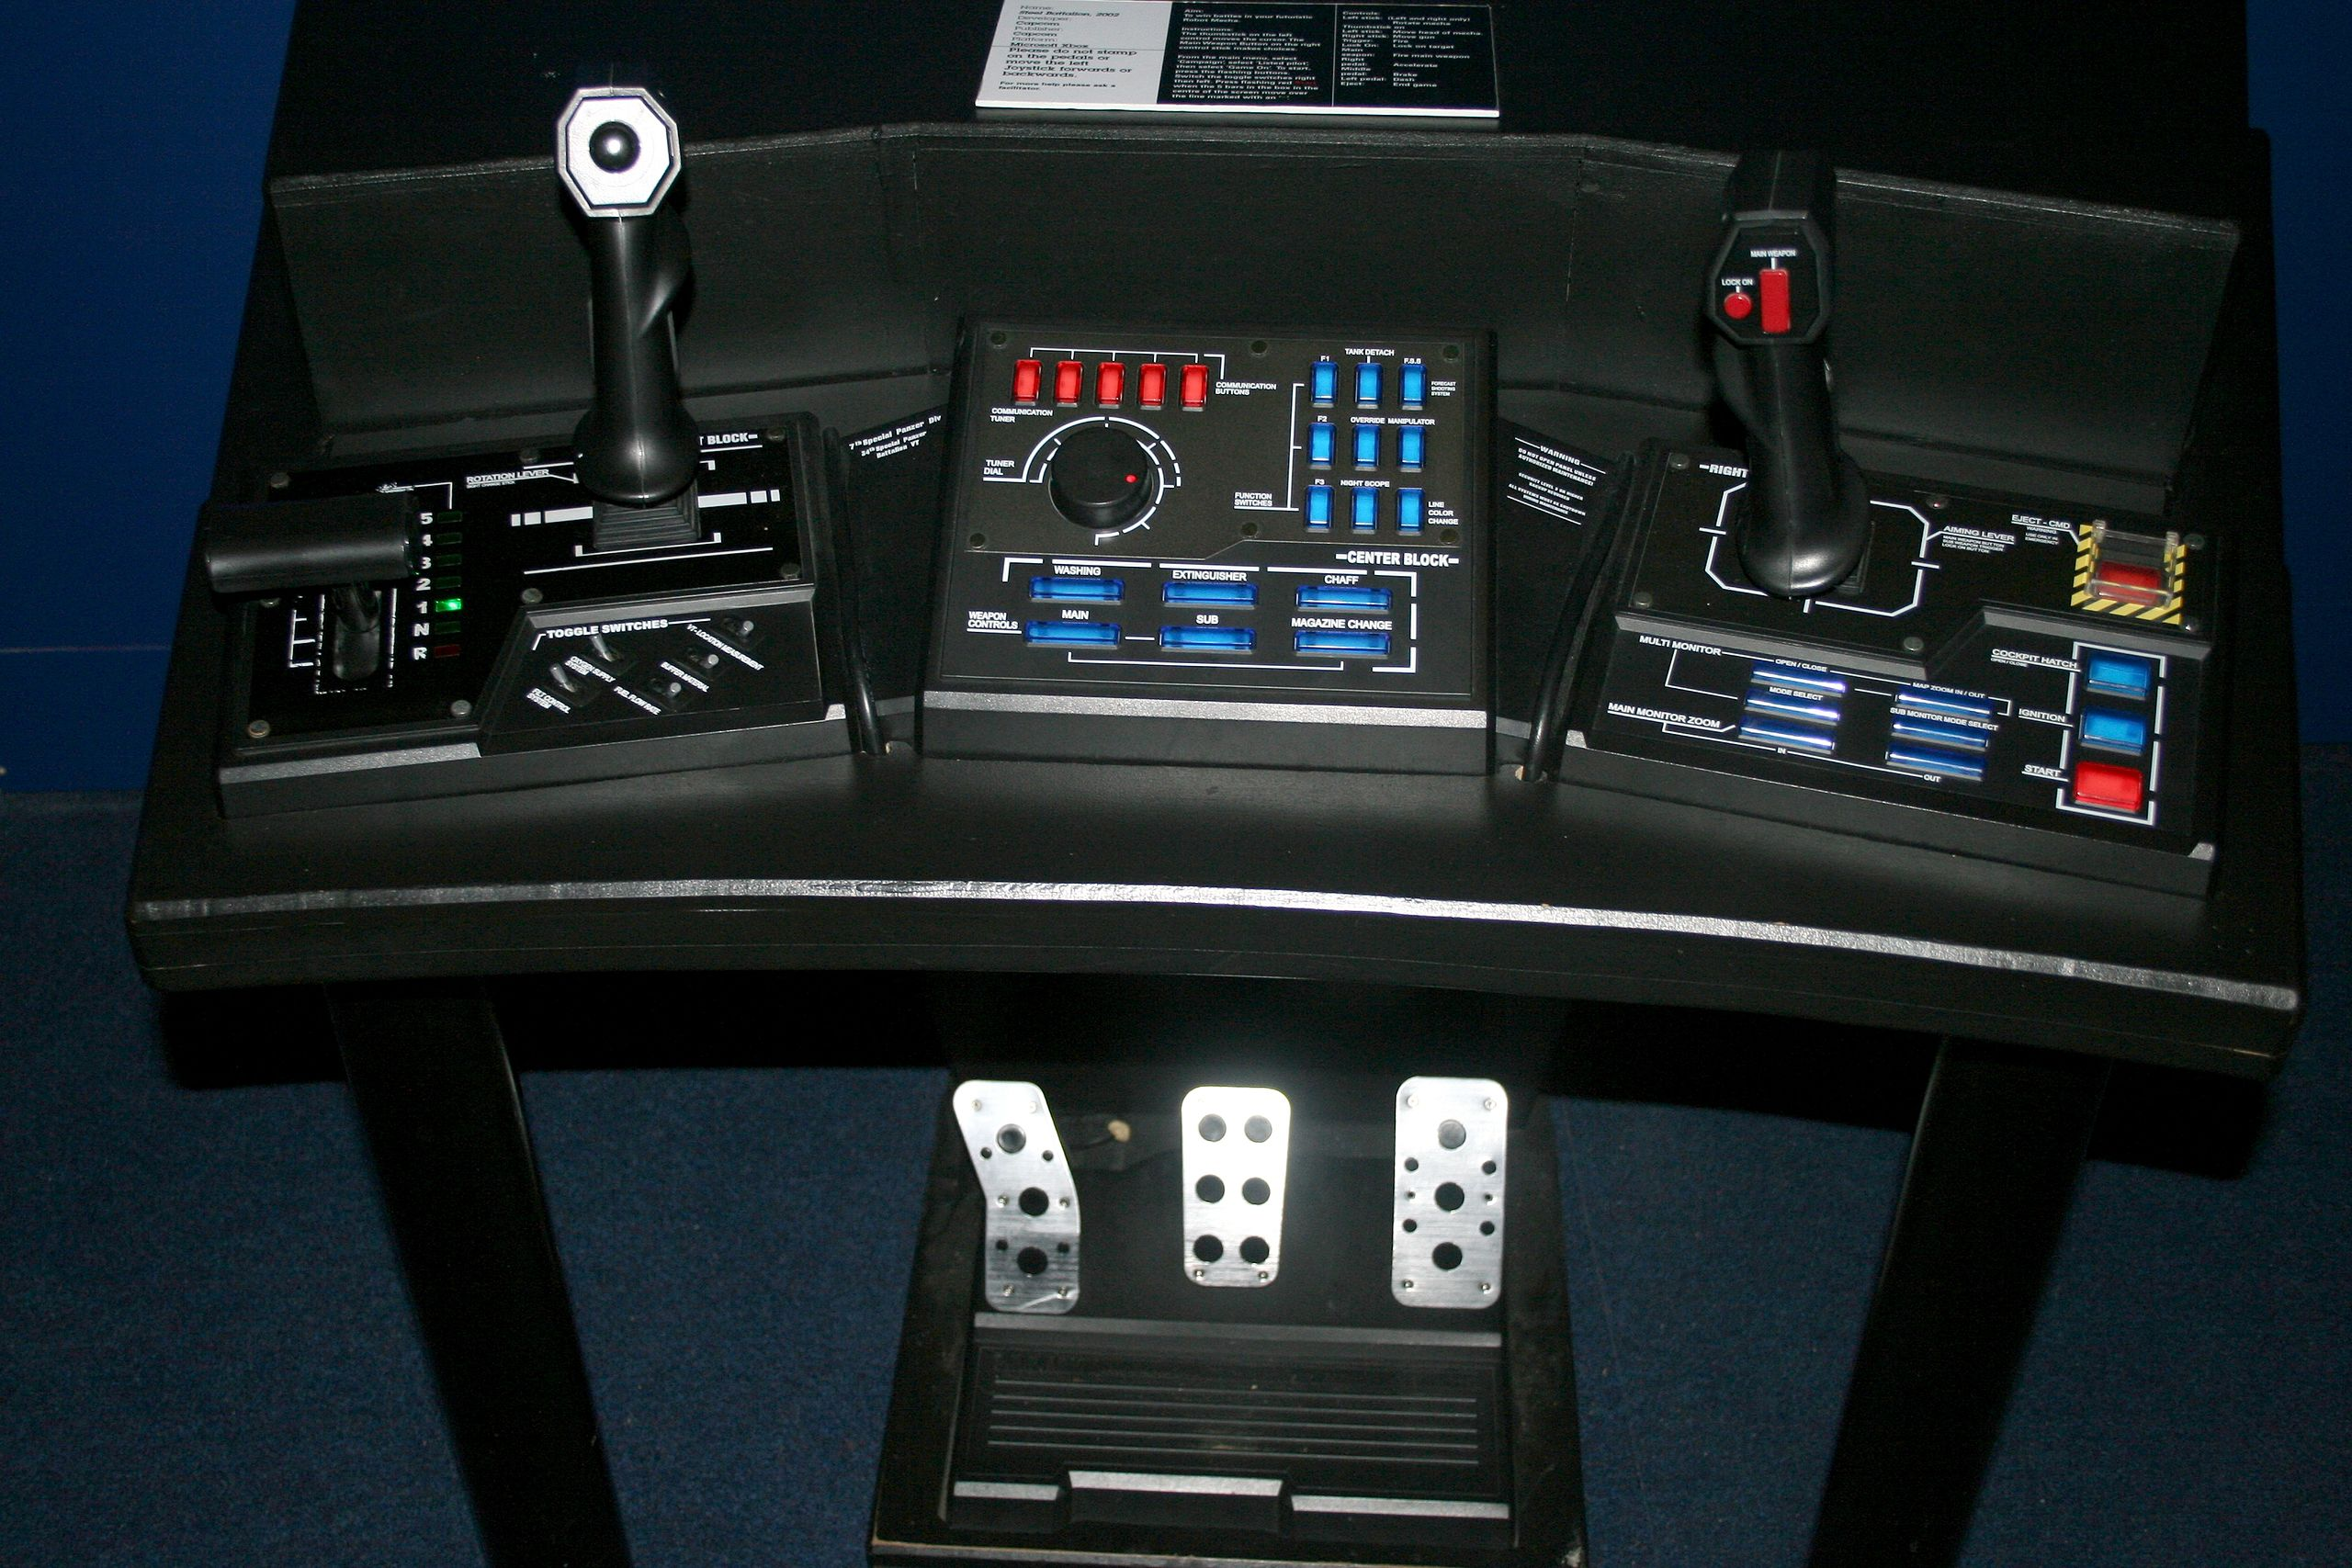 2560px-Steel_Battalion_controllers.jpg